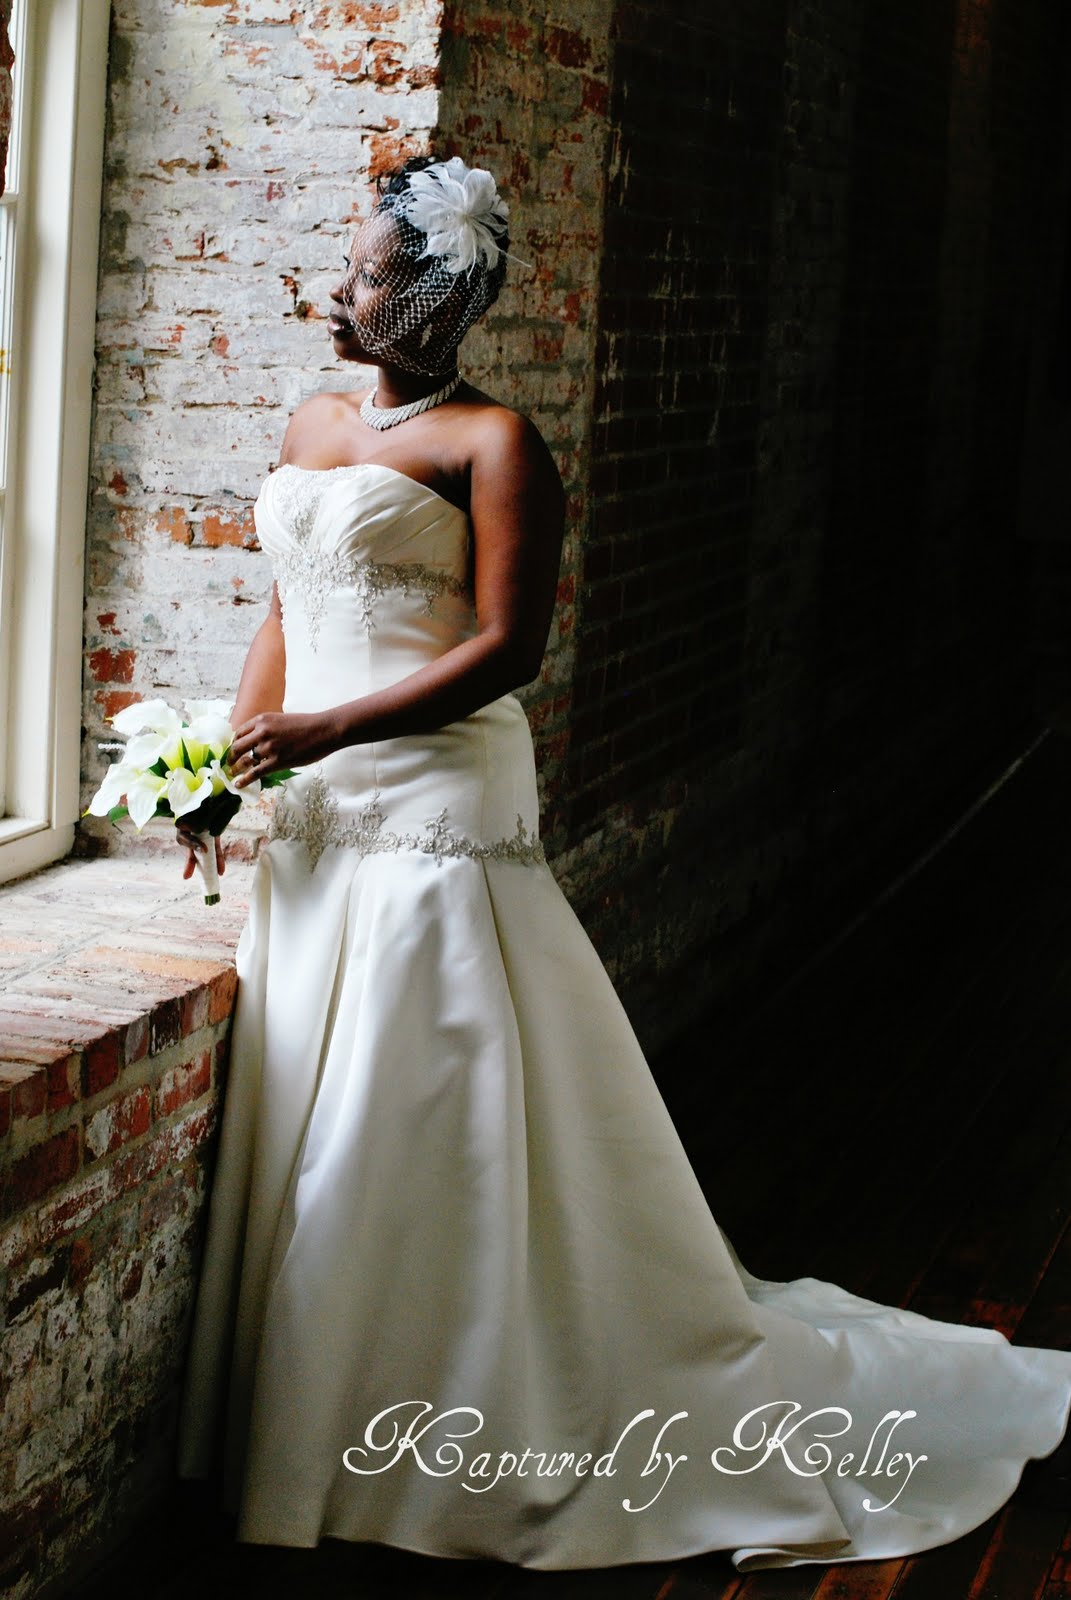 Augusta Ga Wedding Photography: Kaptured By Kelley Photography: Veronica's Bridal